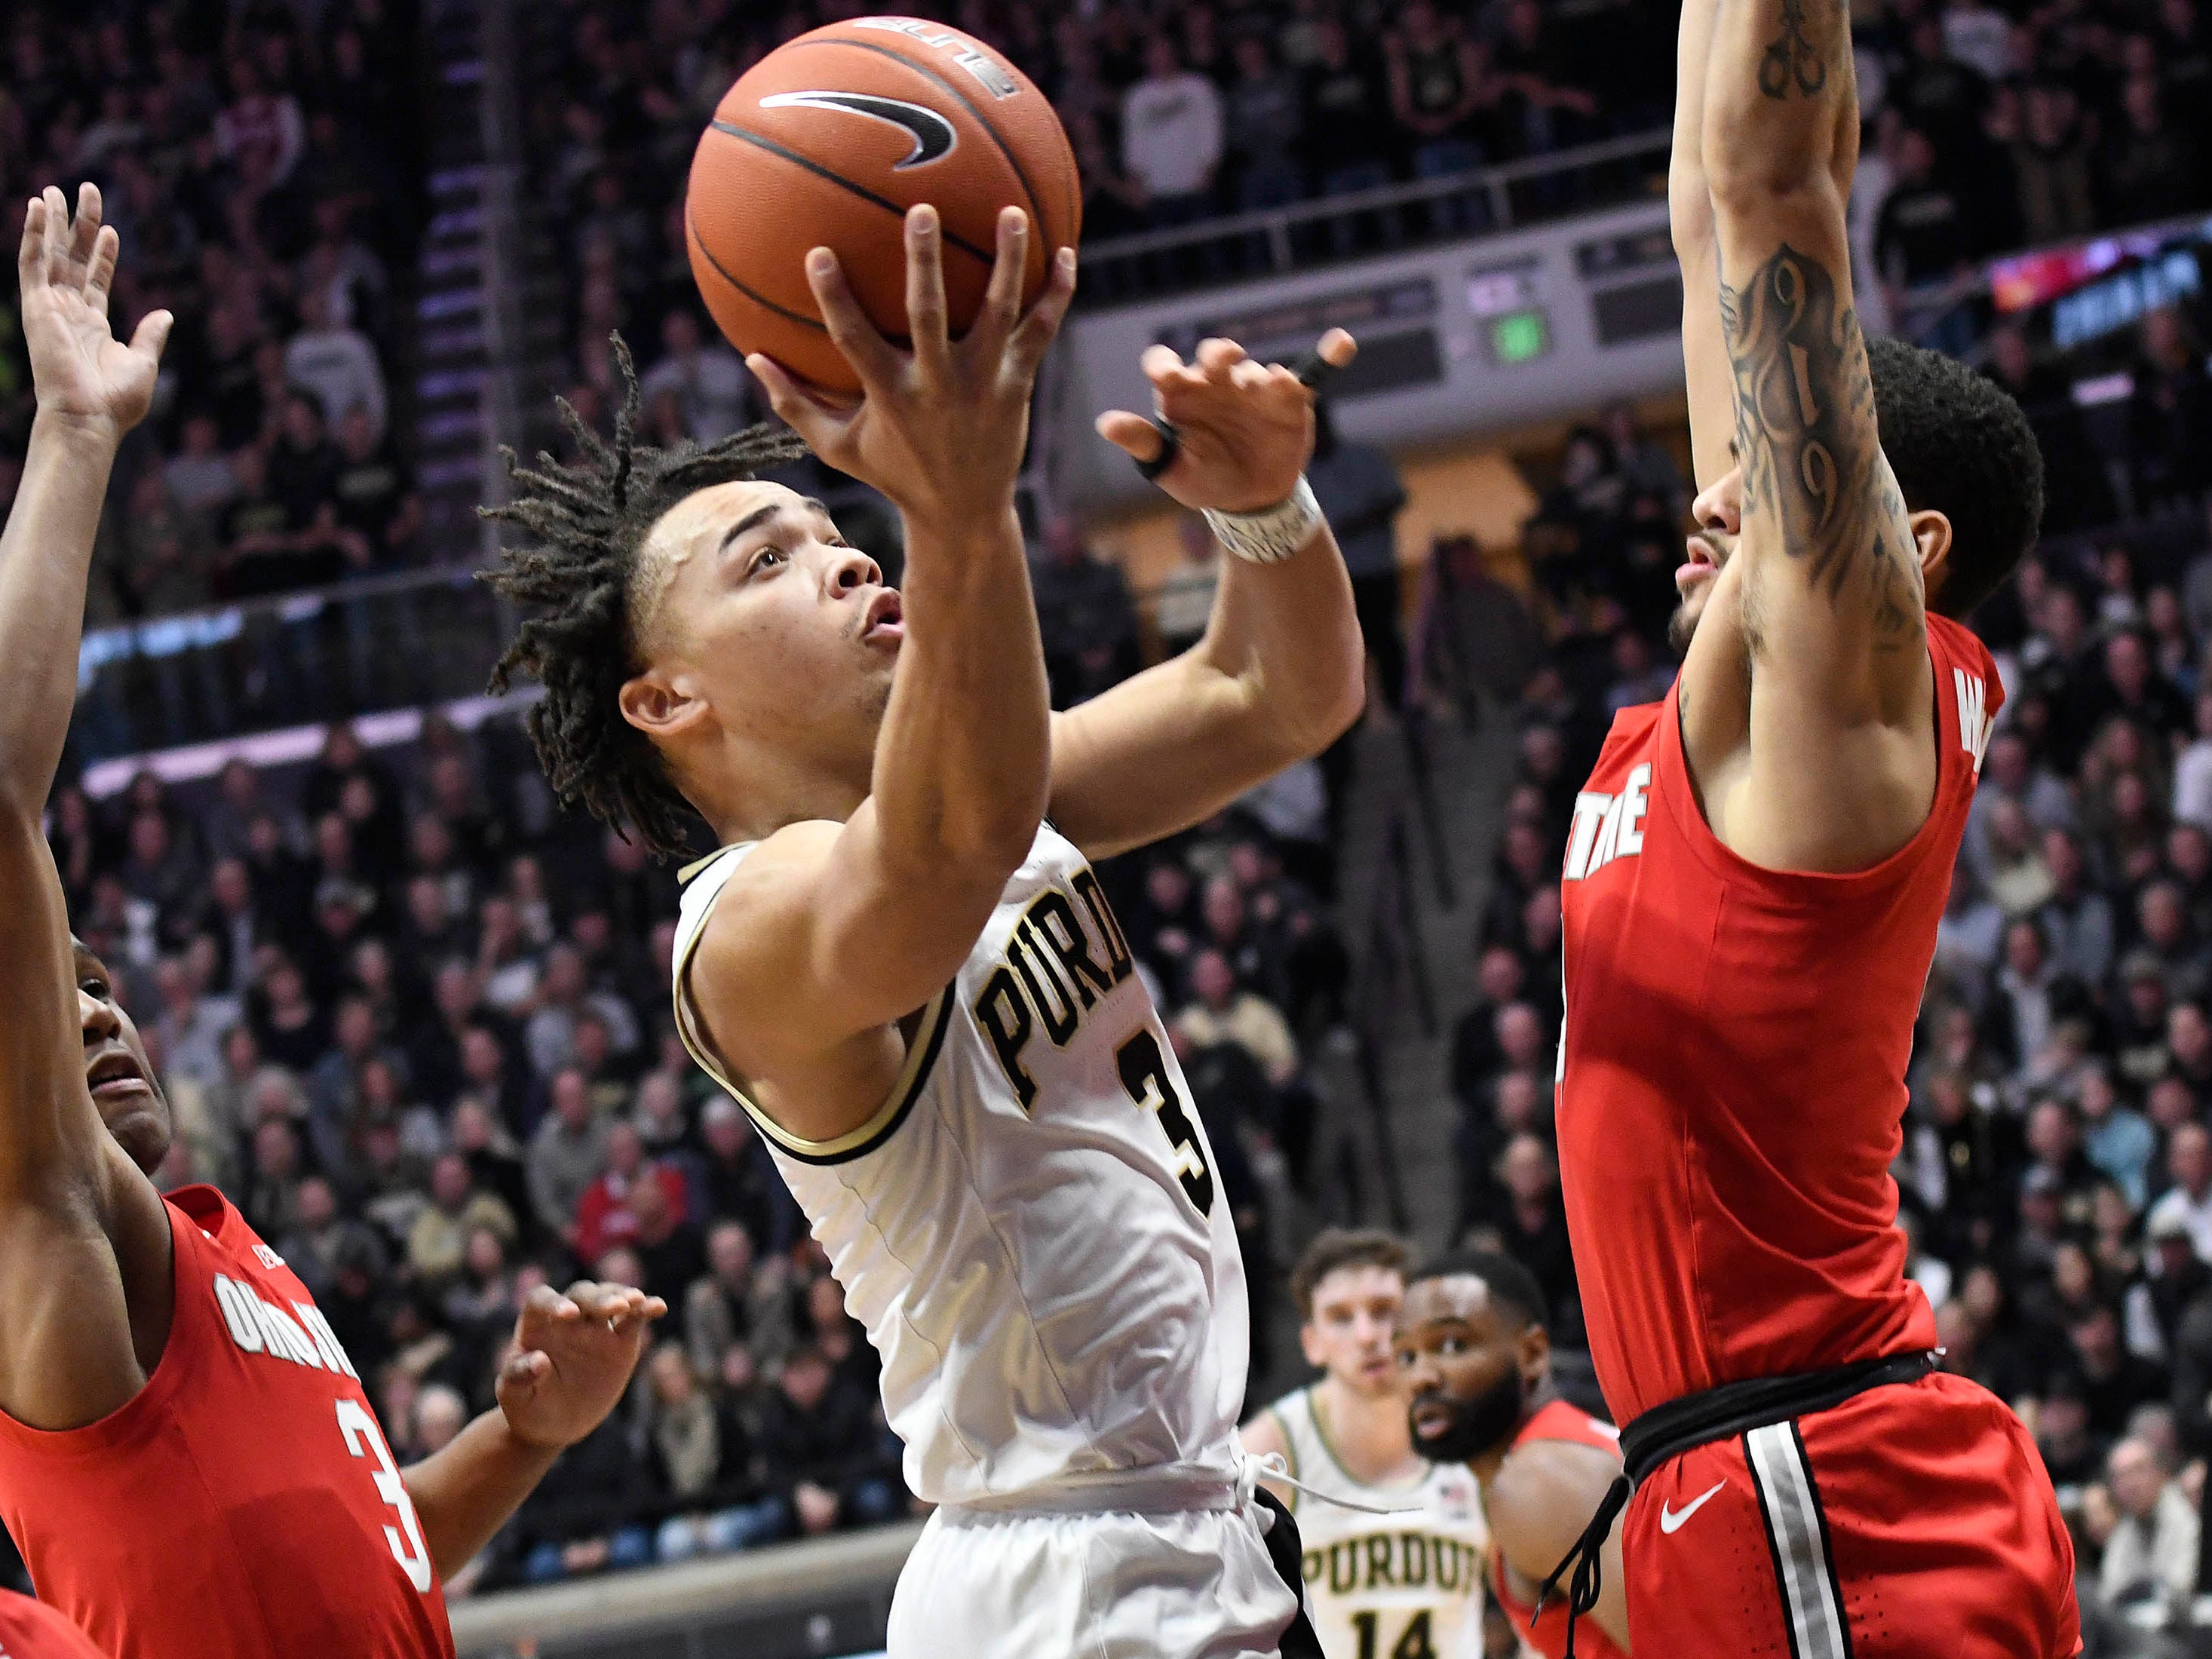 Purdue Boilermakers guard Carsen Edwards (3) splits the defense as he goes to the basket in the first half at Mackey Arena.